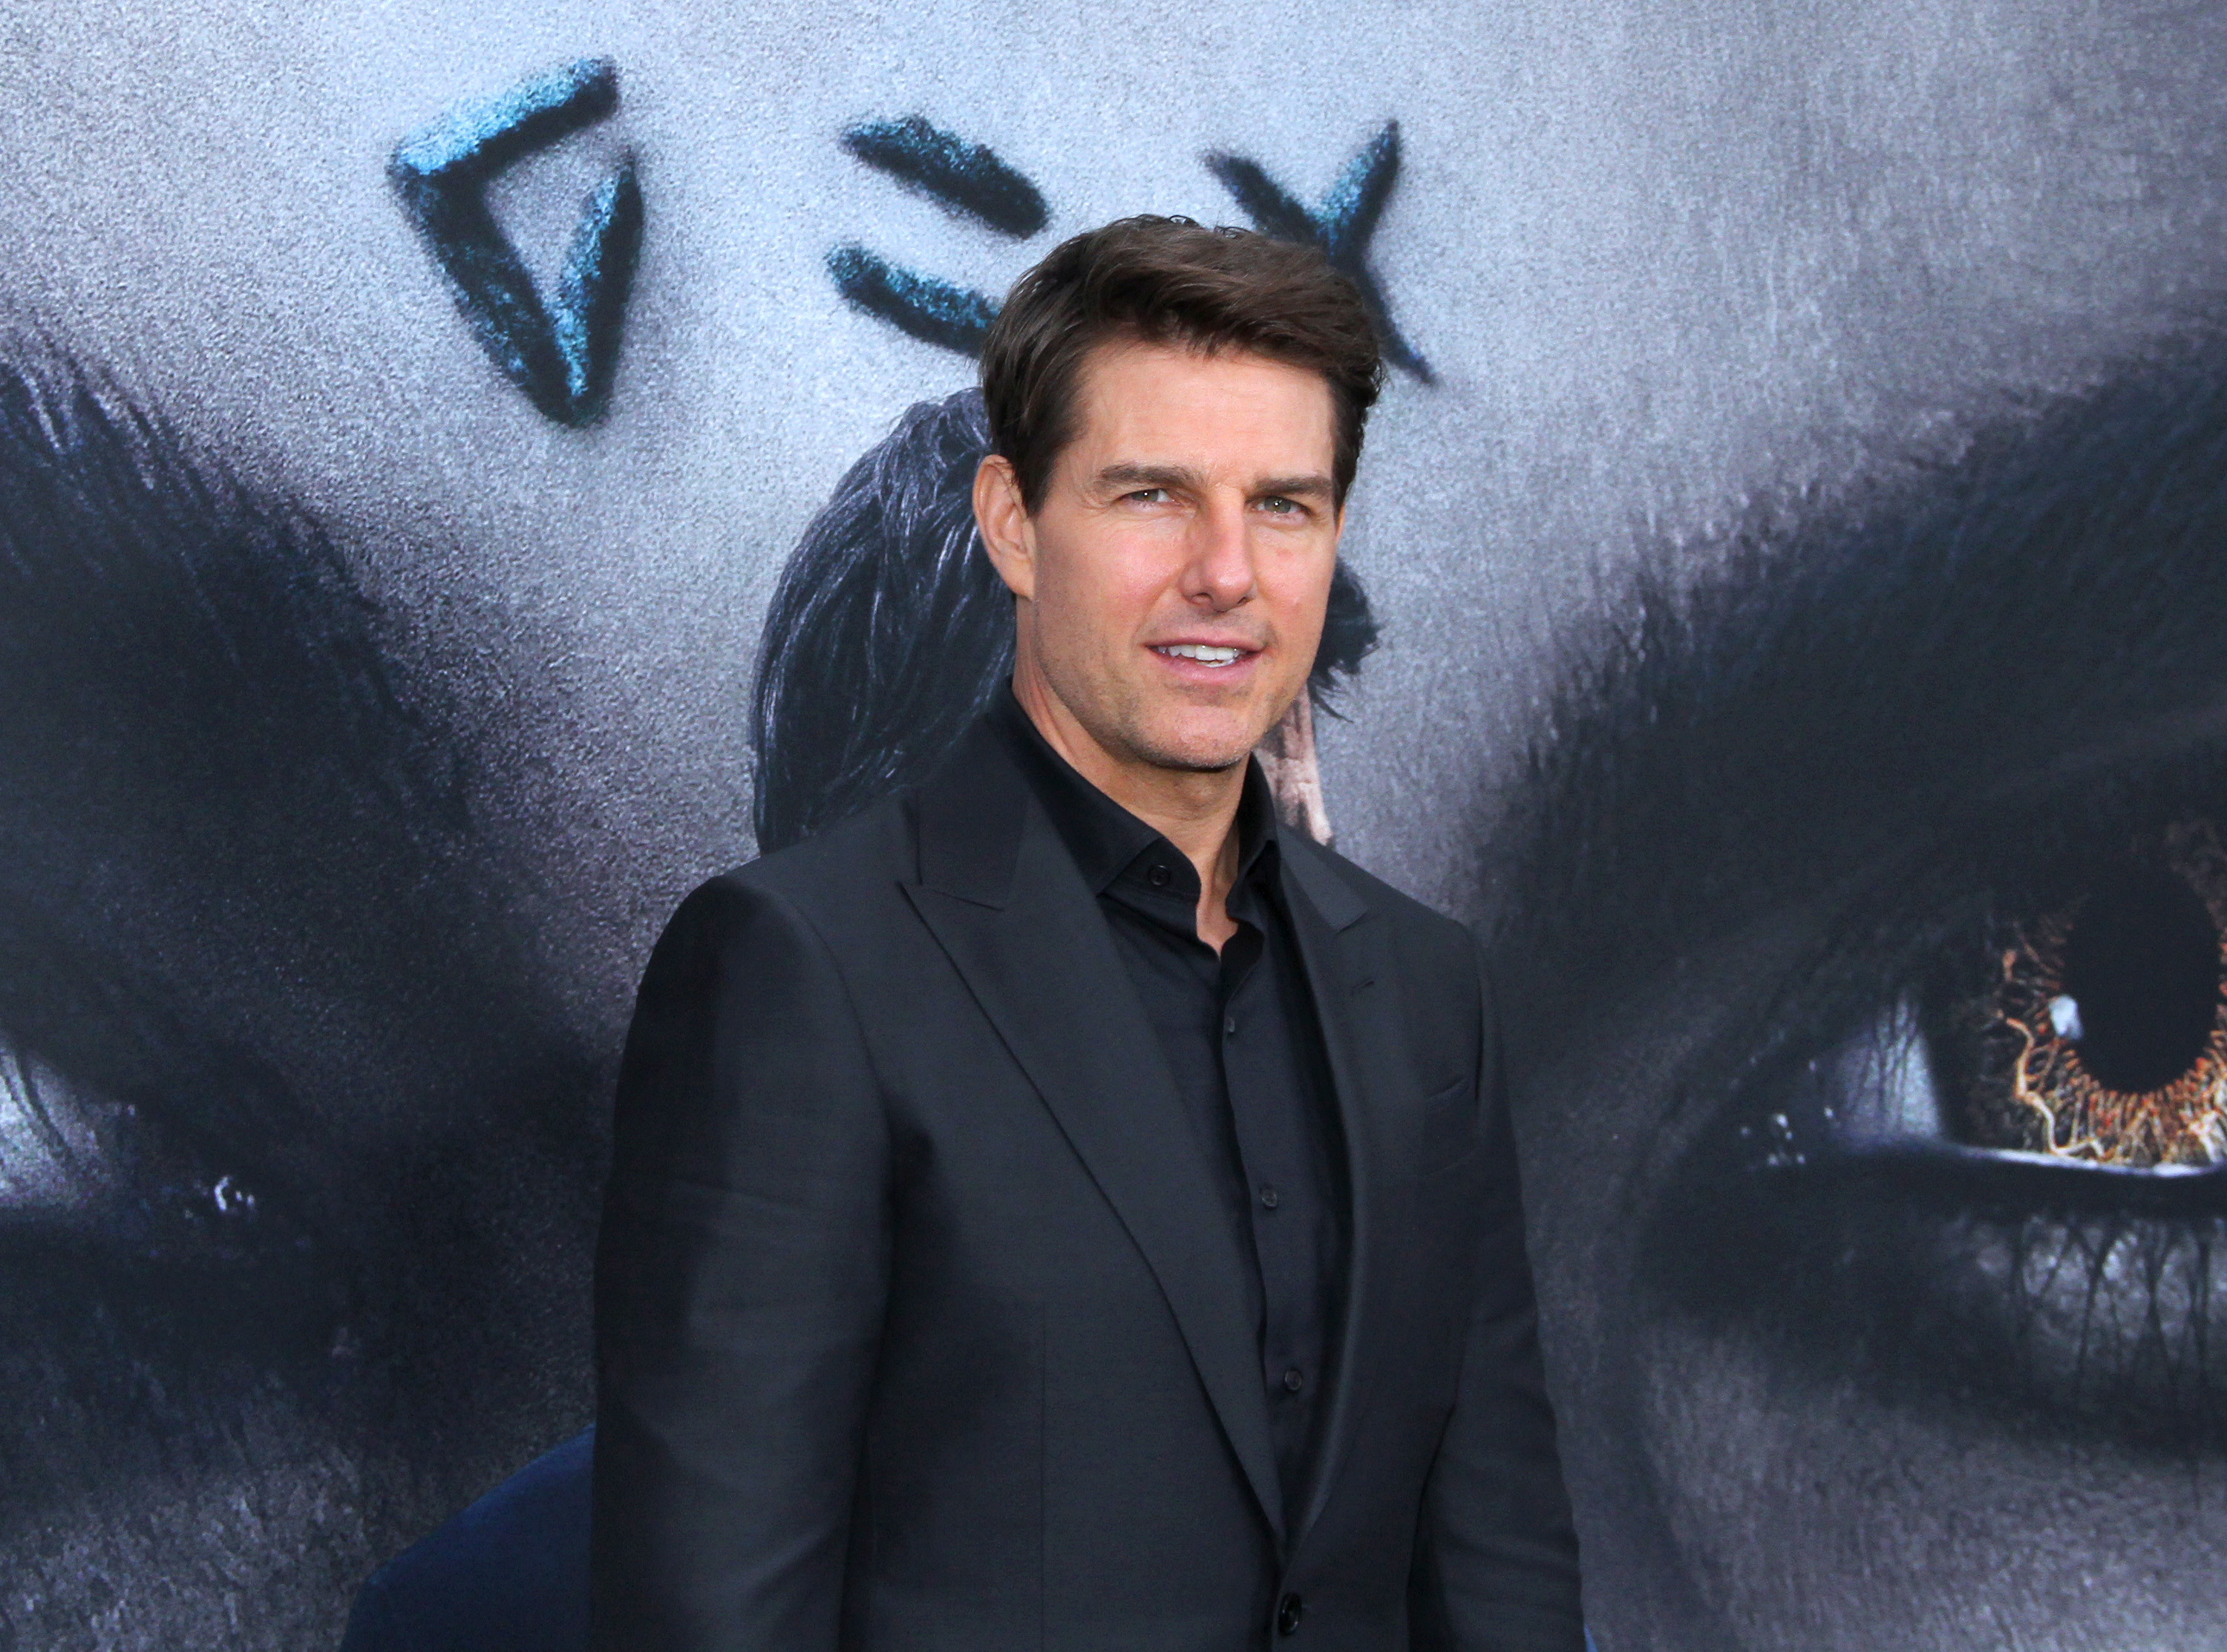 Tom Cruise had a scary stunt accident on set, and here's what we know